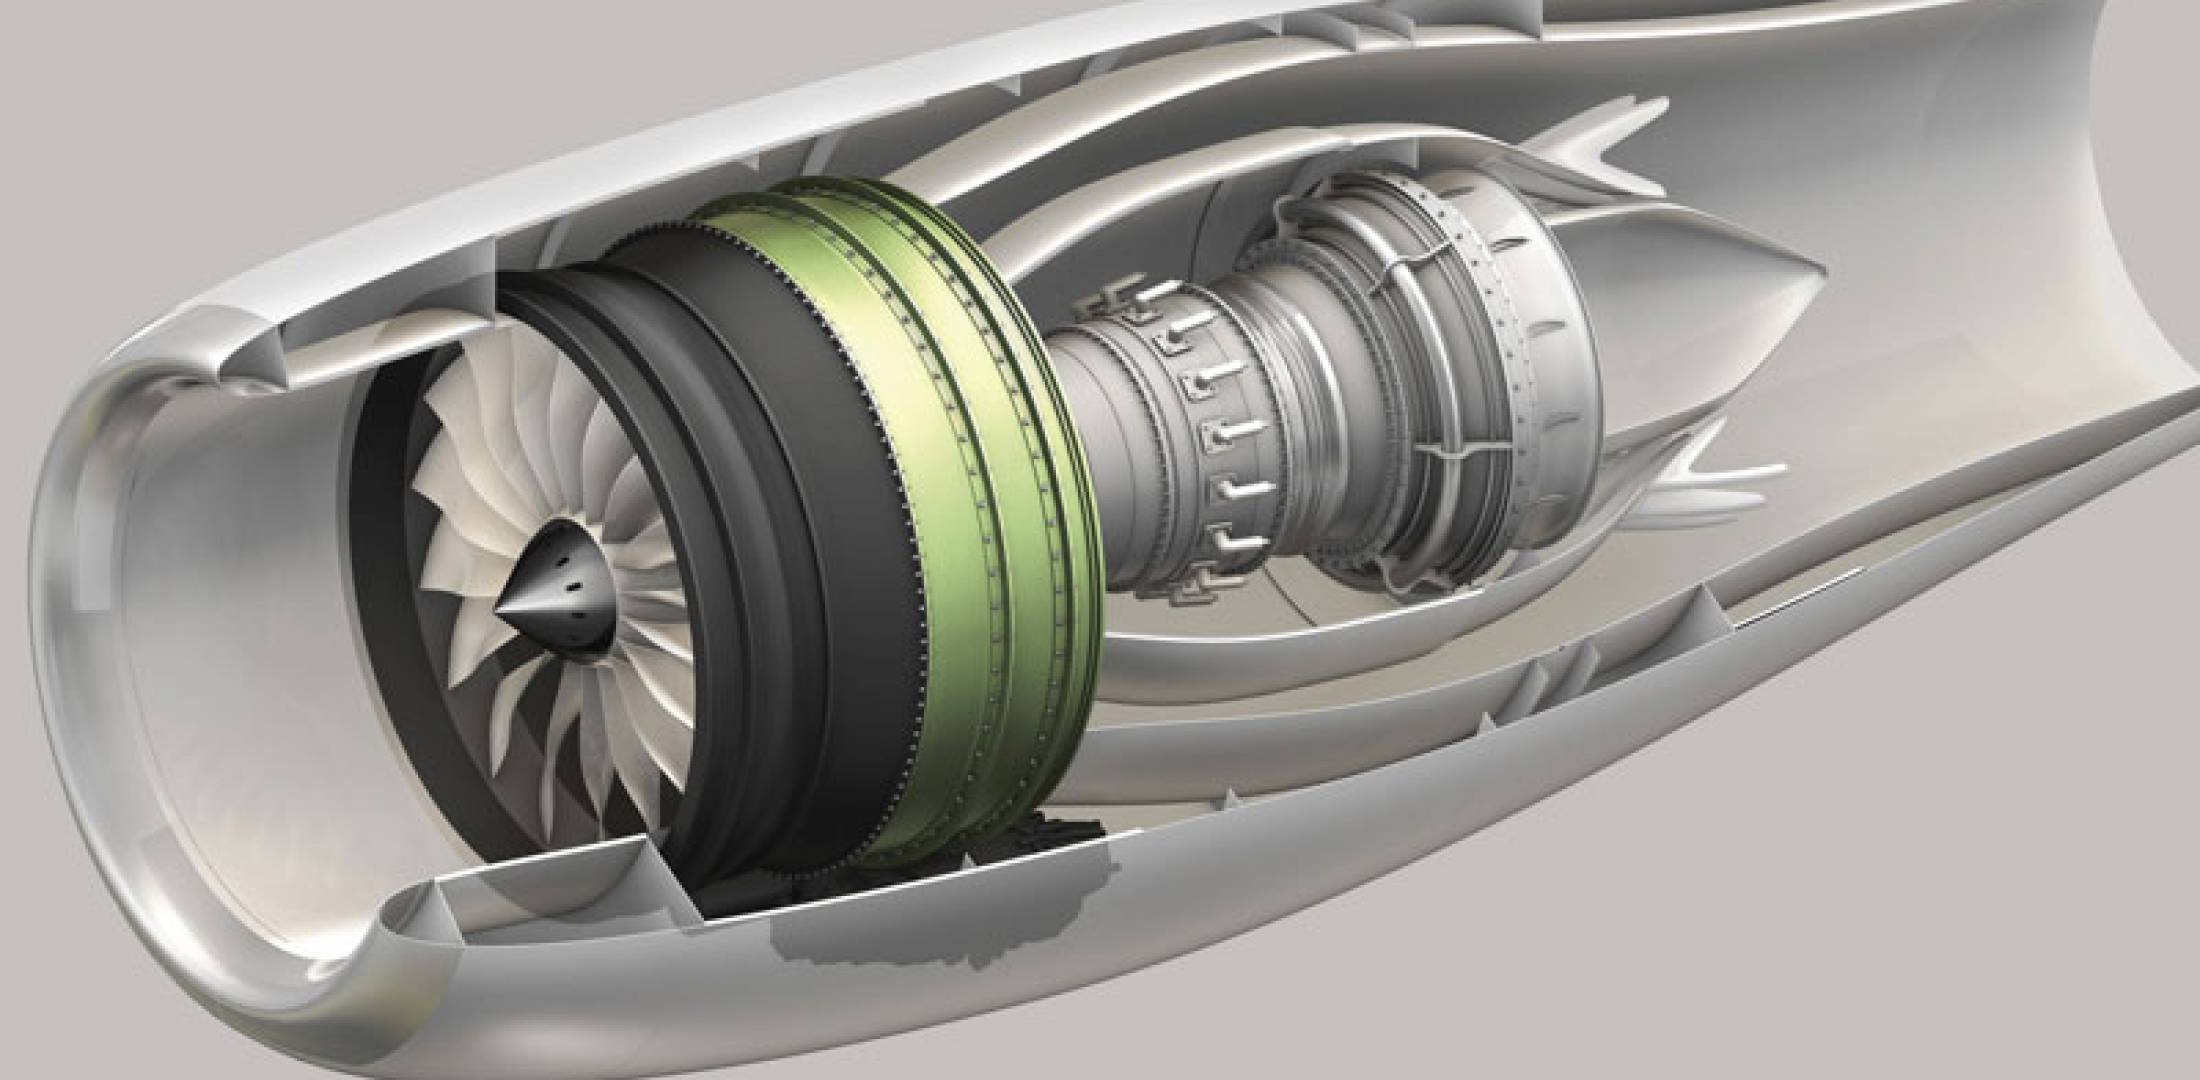 GE Passport turbofan